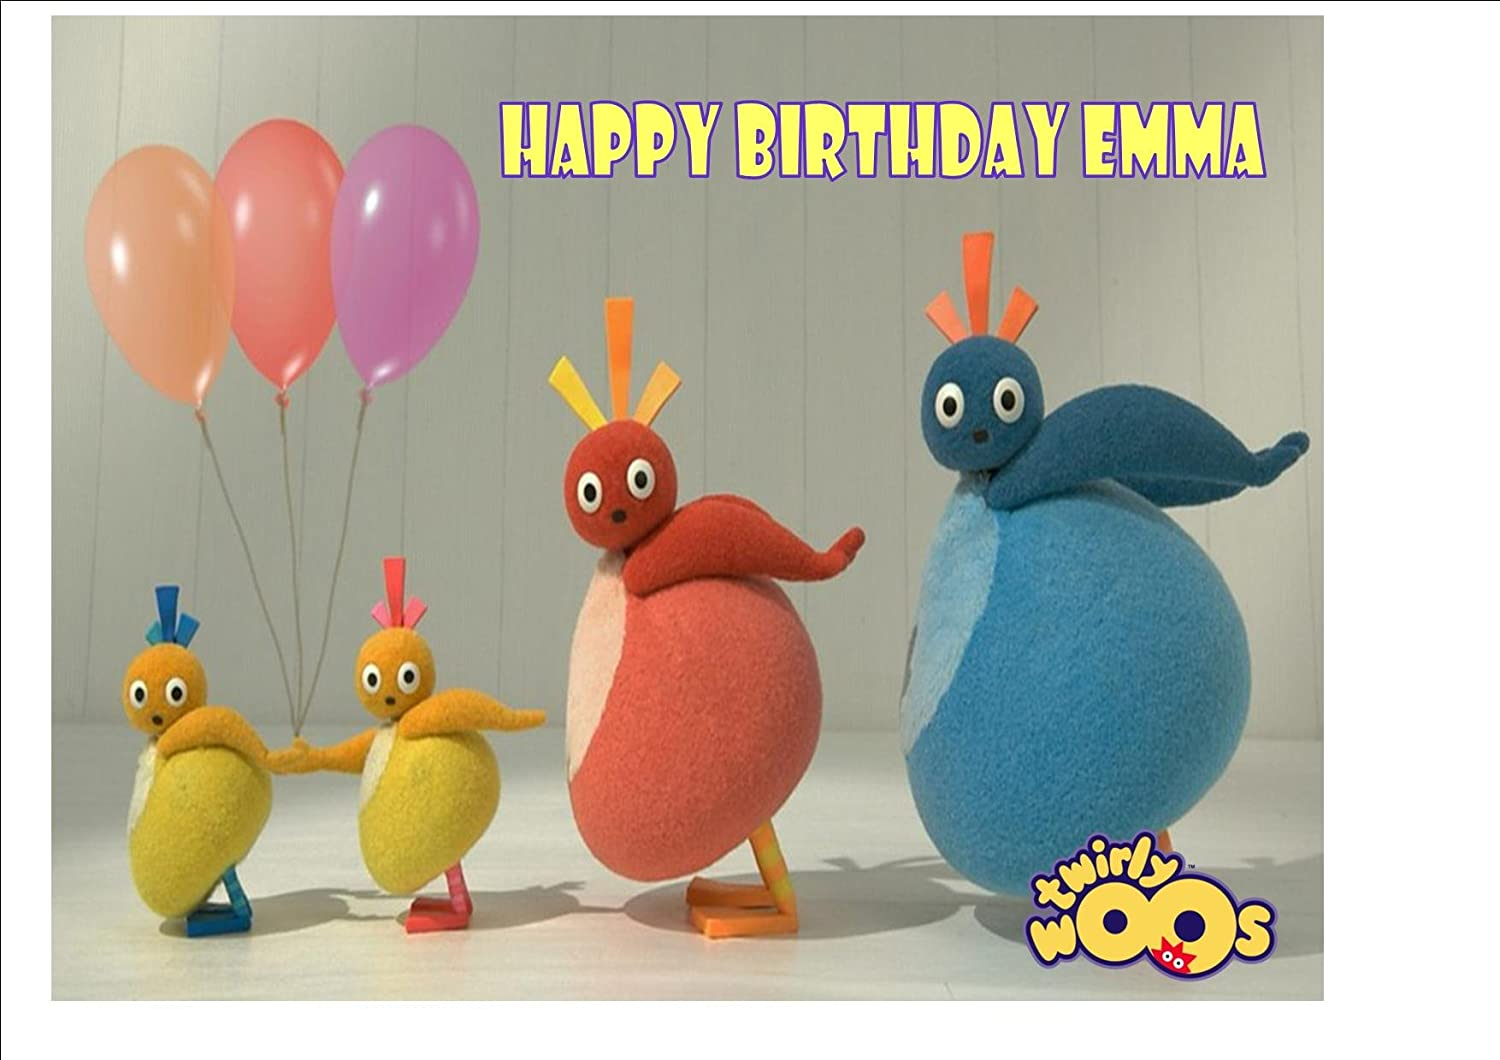 TWIRLYWOOS CAKE TOPPER PERSONALISED BIRTHDAY CAKE PRINTED TOPPER TWIRLY WOOS